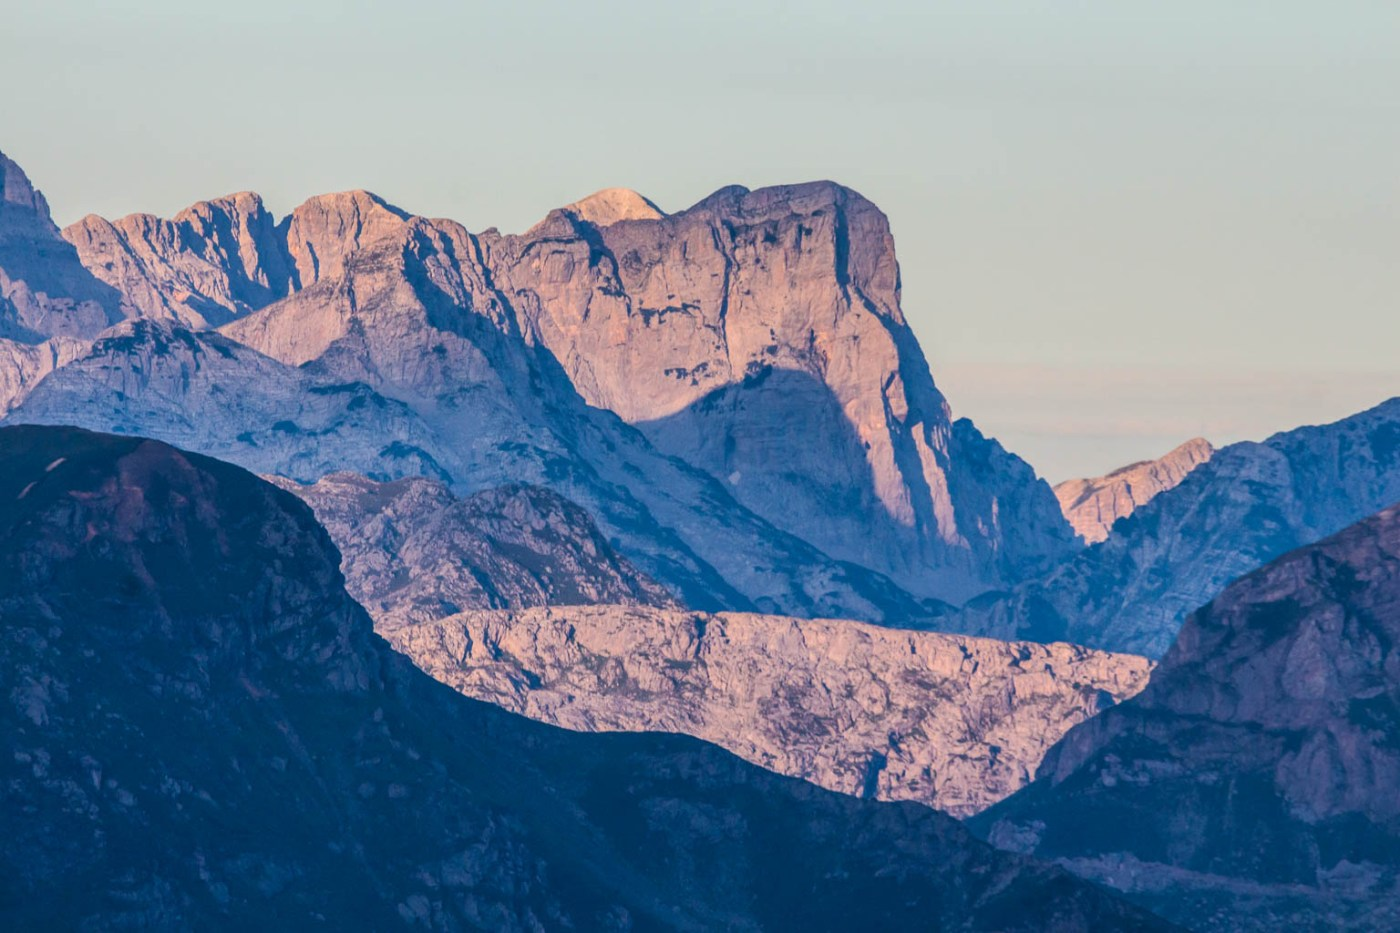 Albania, Early morning in Damned Mountains (Prokletije).jpg - © European Wilderness Society CC BY-NC-ND 4.0